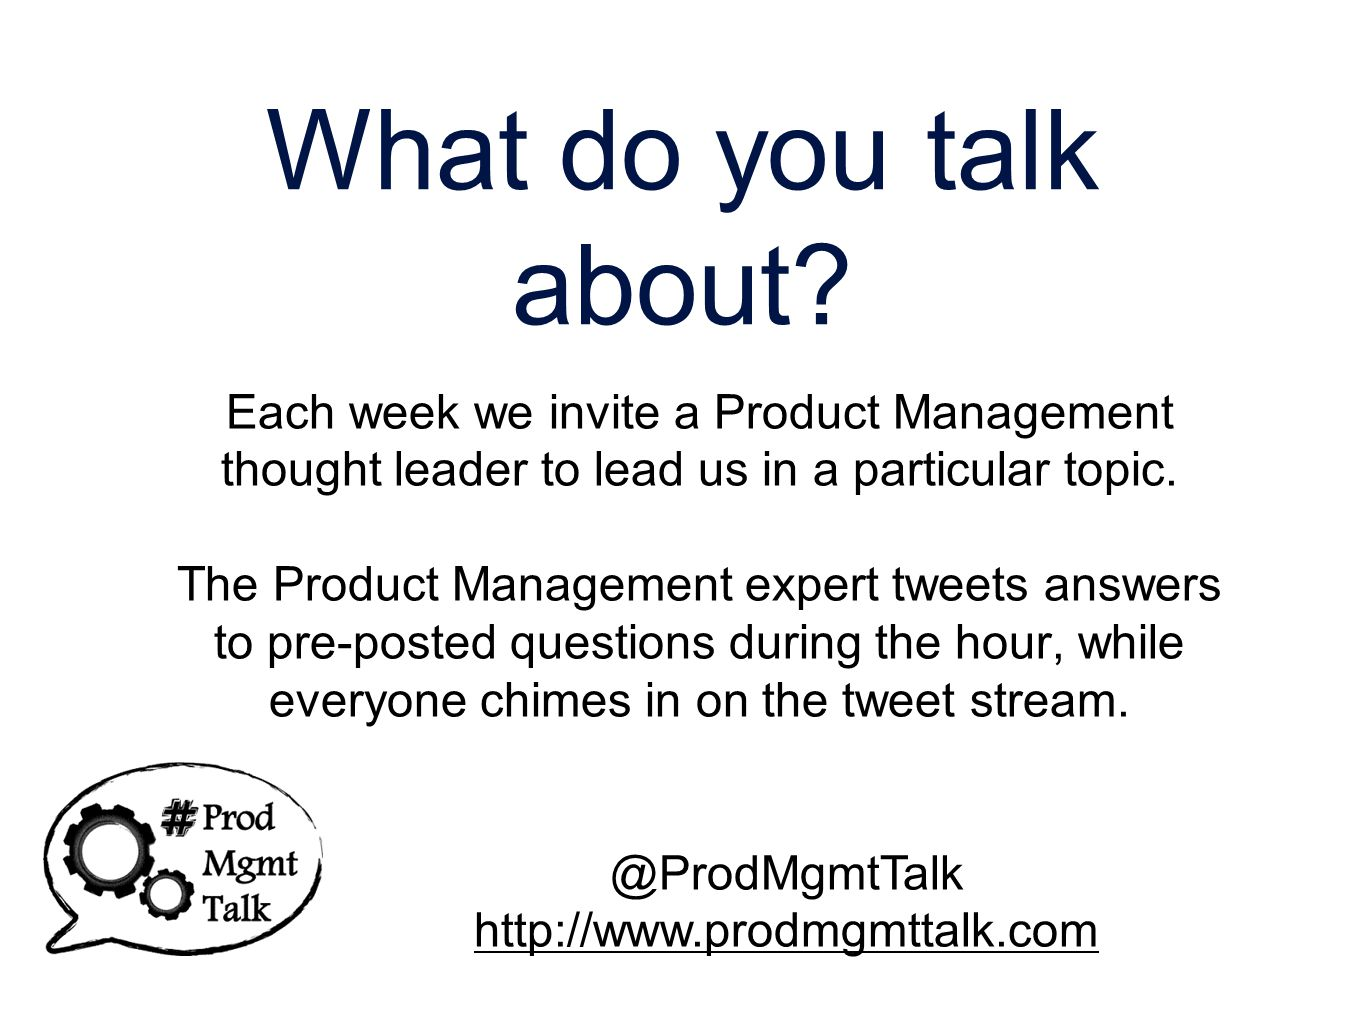 Other Tweet chats Tweet Chats are a growing trend Currently there are 350 scheduled chats Twitter Chat Schedule http://bit.ly/e4NAQg Follow @twchat for tweets about new chats added @ProdMgmtTalk http://www.prodmgmttalk.com